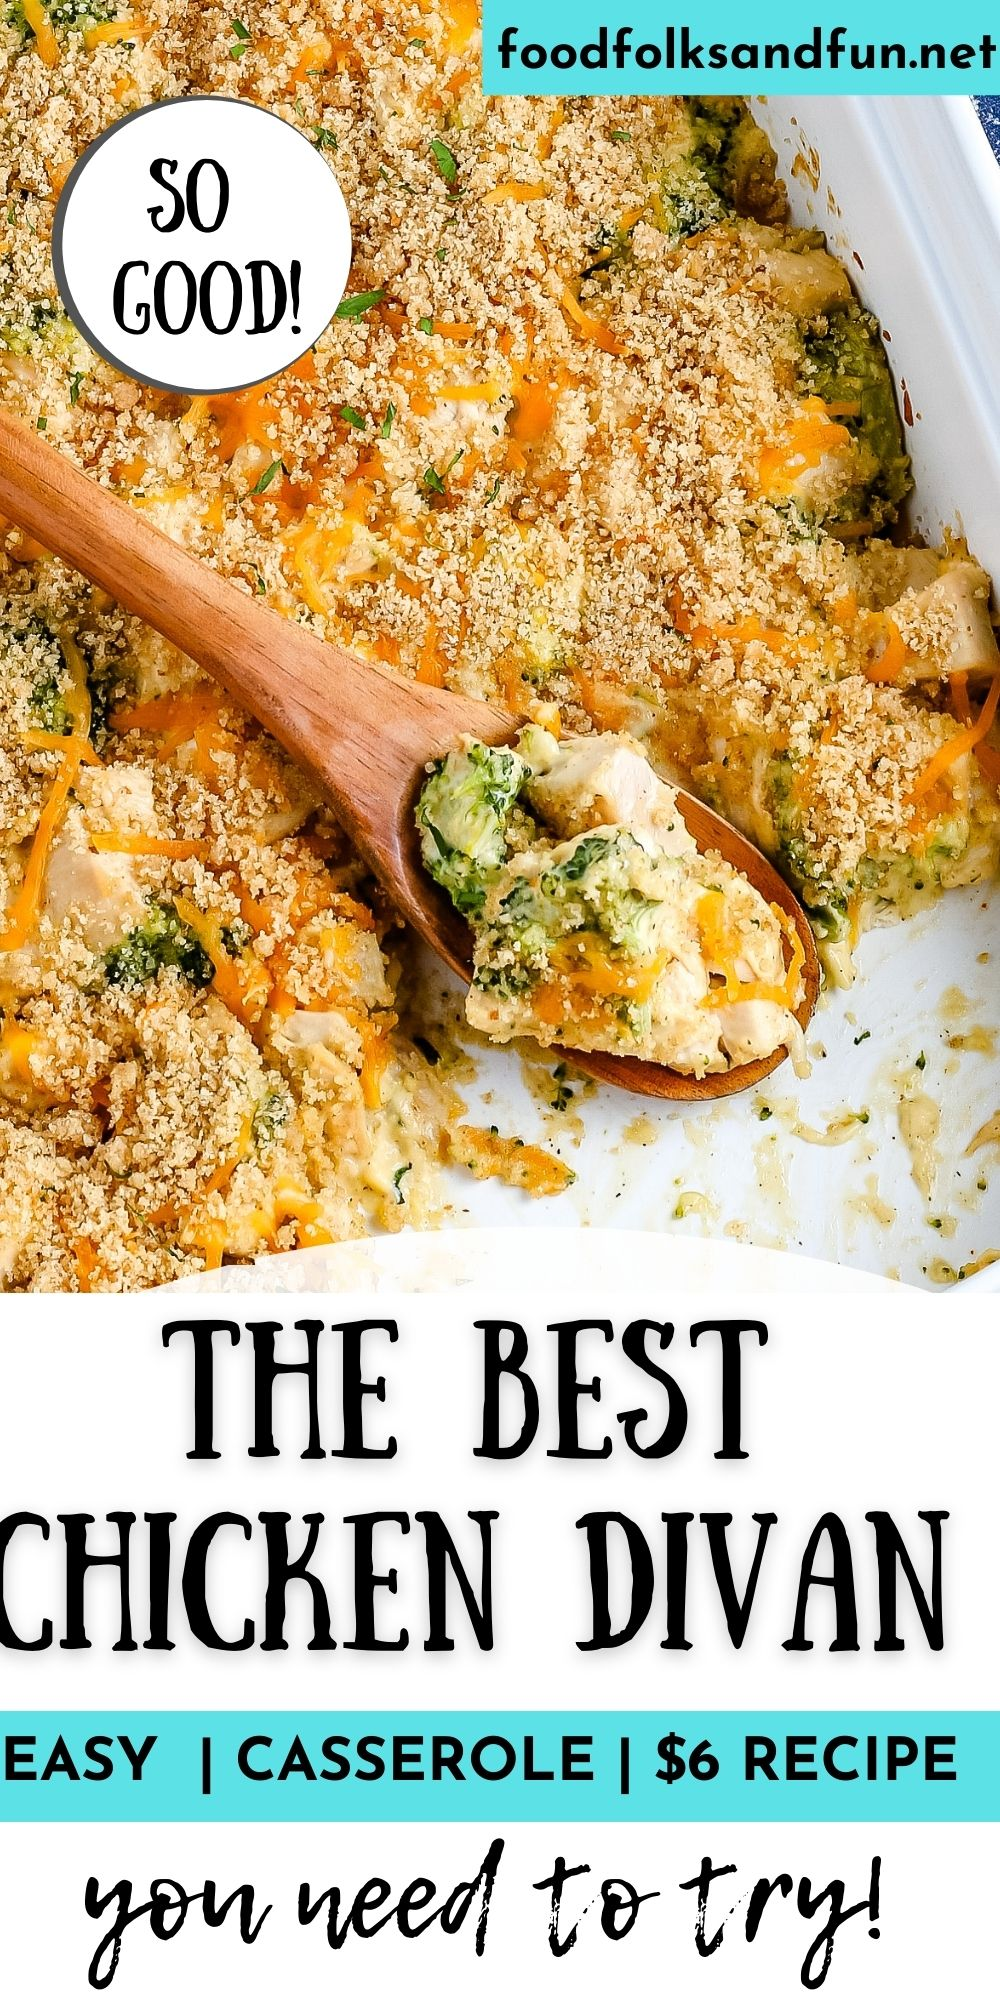 This Chicken Divan Casserole recipe is made with chunks of chicken, broccoli, cheese, a creamy sauce, and breadcrumbs. It's an easy and delicious weeknight meal. via @foodfolksandfun